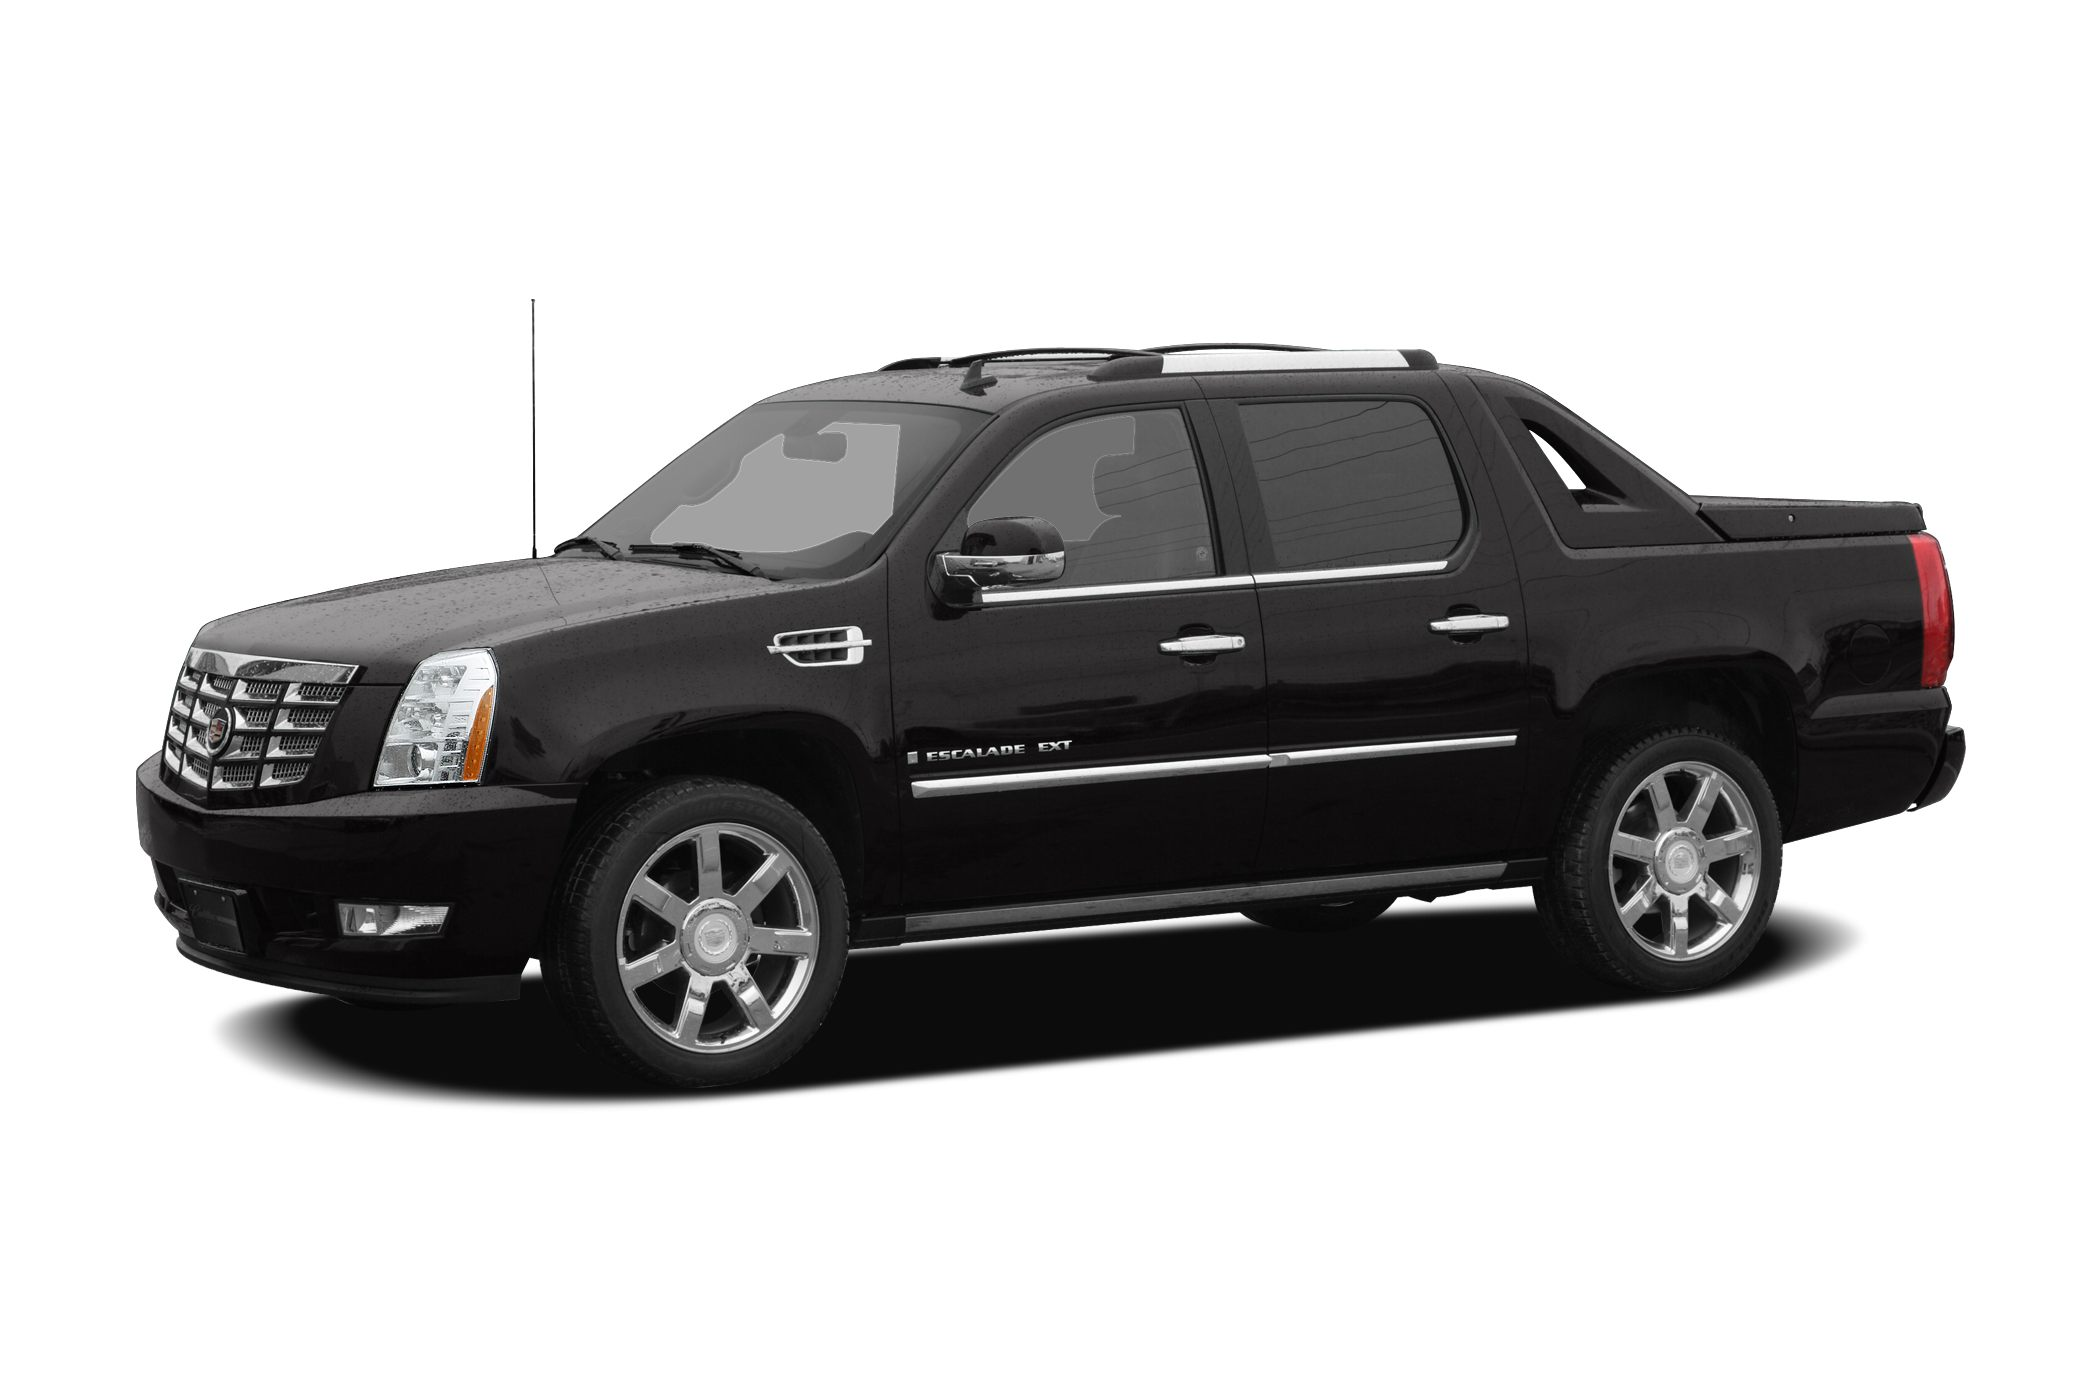 2009 Cadillac Escalade EXT Crew Cab Pickup for sale in Williamsville for $26,995 with 73,741 miles